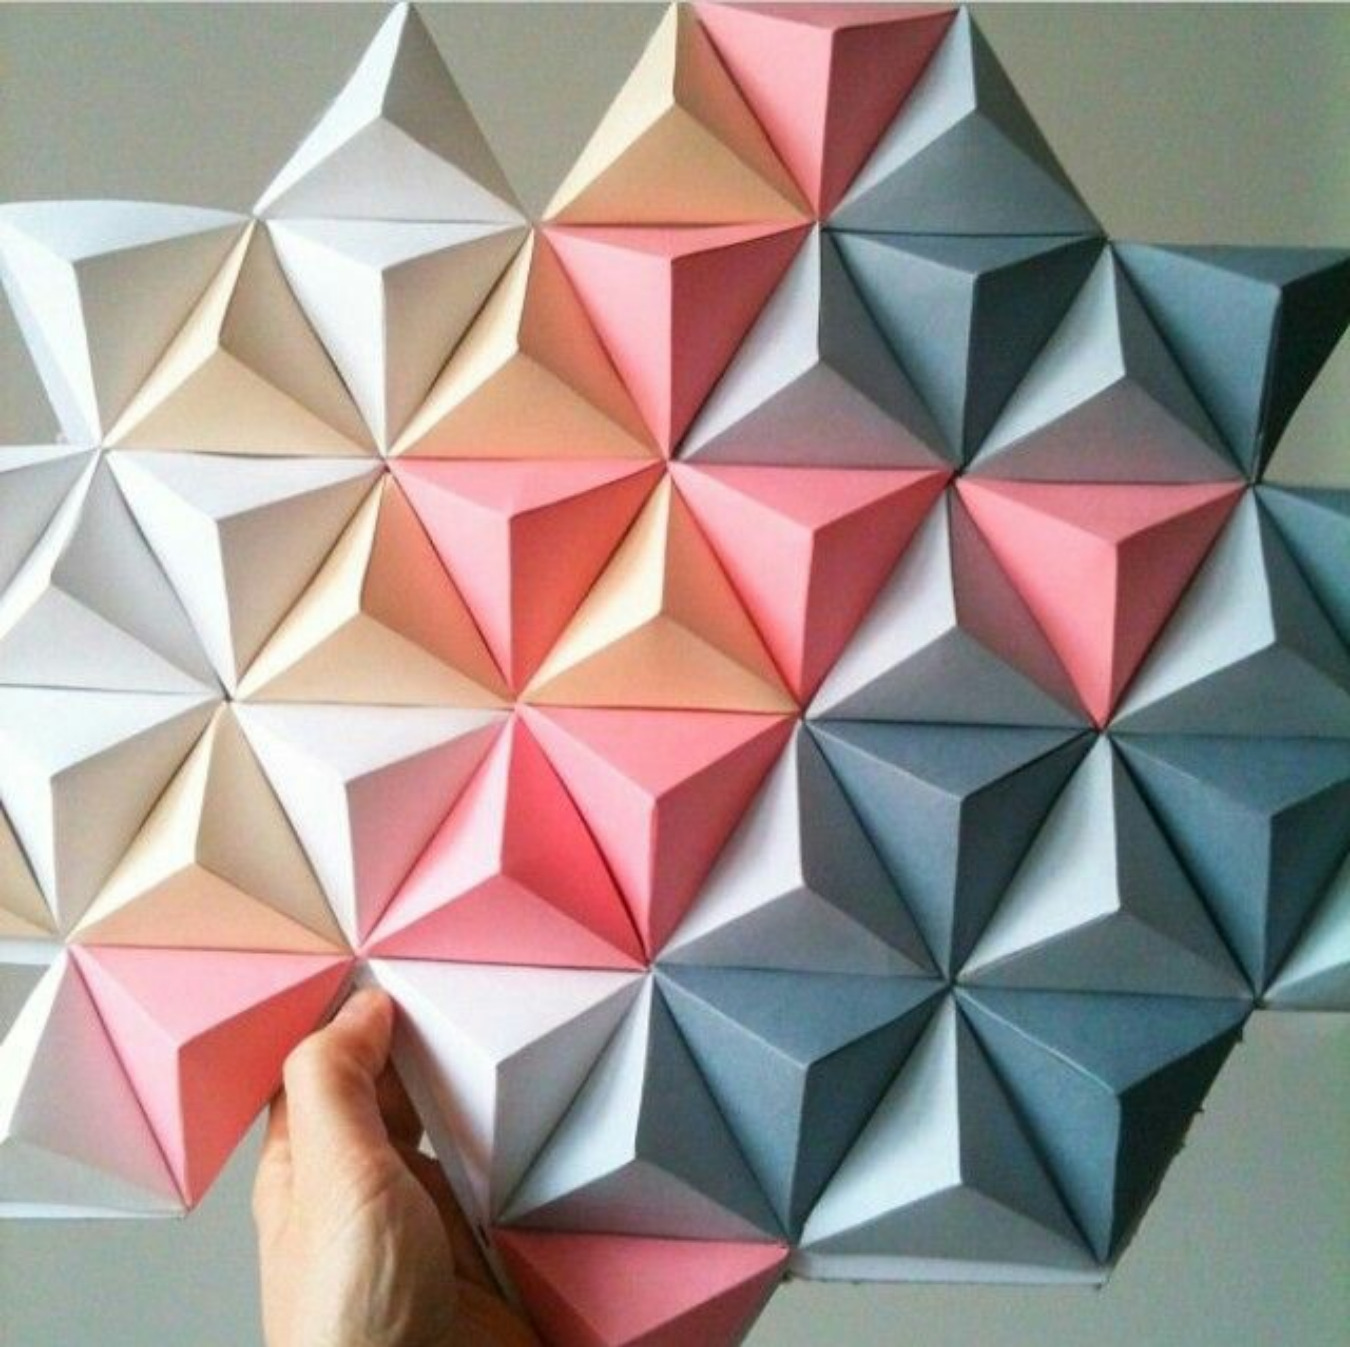 Fun With Origami Make Your Own Wall Art Home Decor Tickets By Collab House 9 Sep 2018 Hyderabad Event